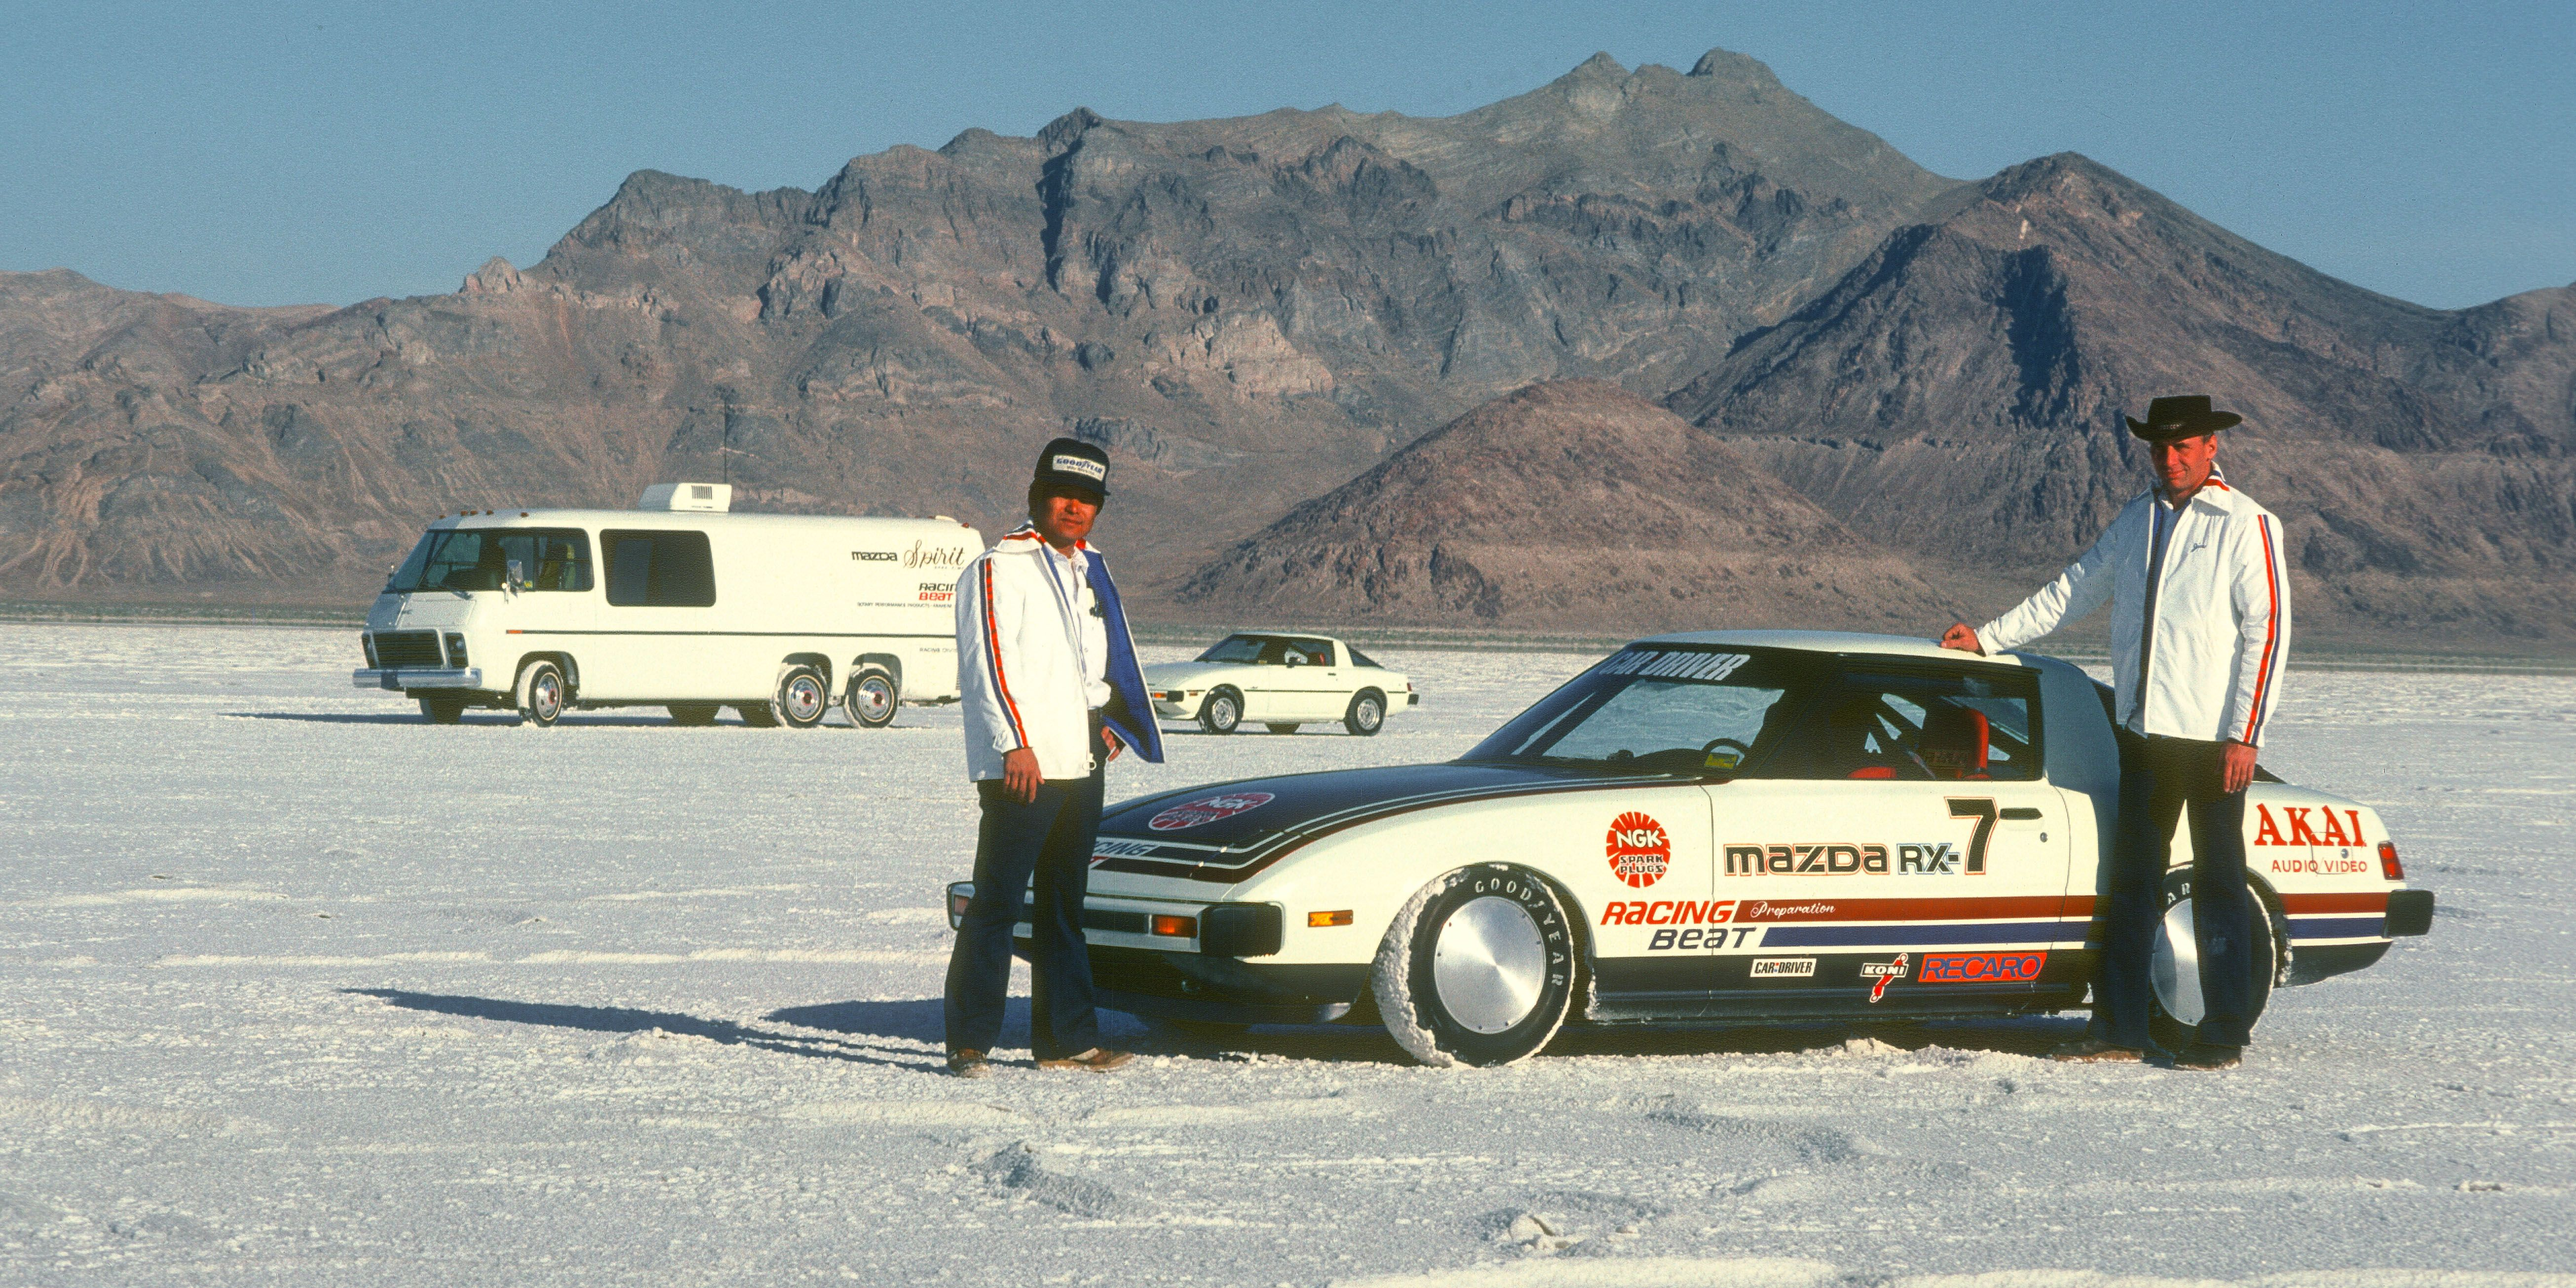 The Story of the Shop that Dedicated Itself to the Rotary Engine